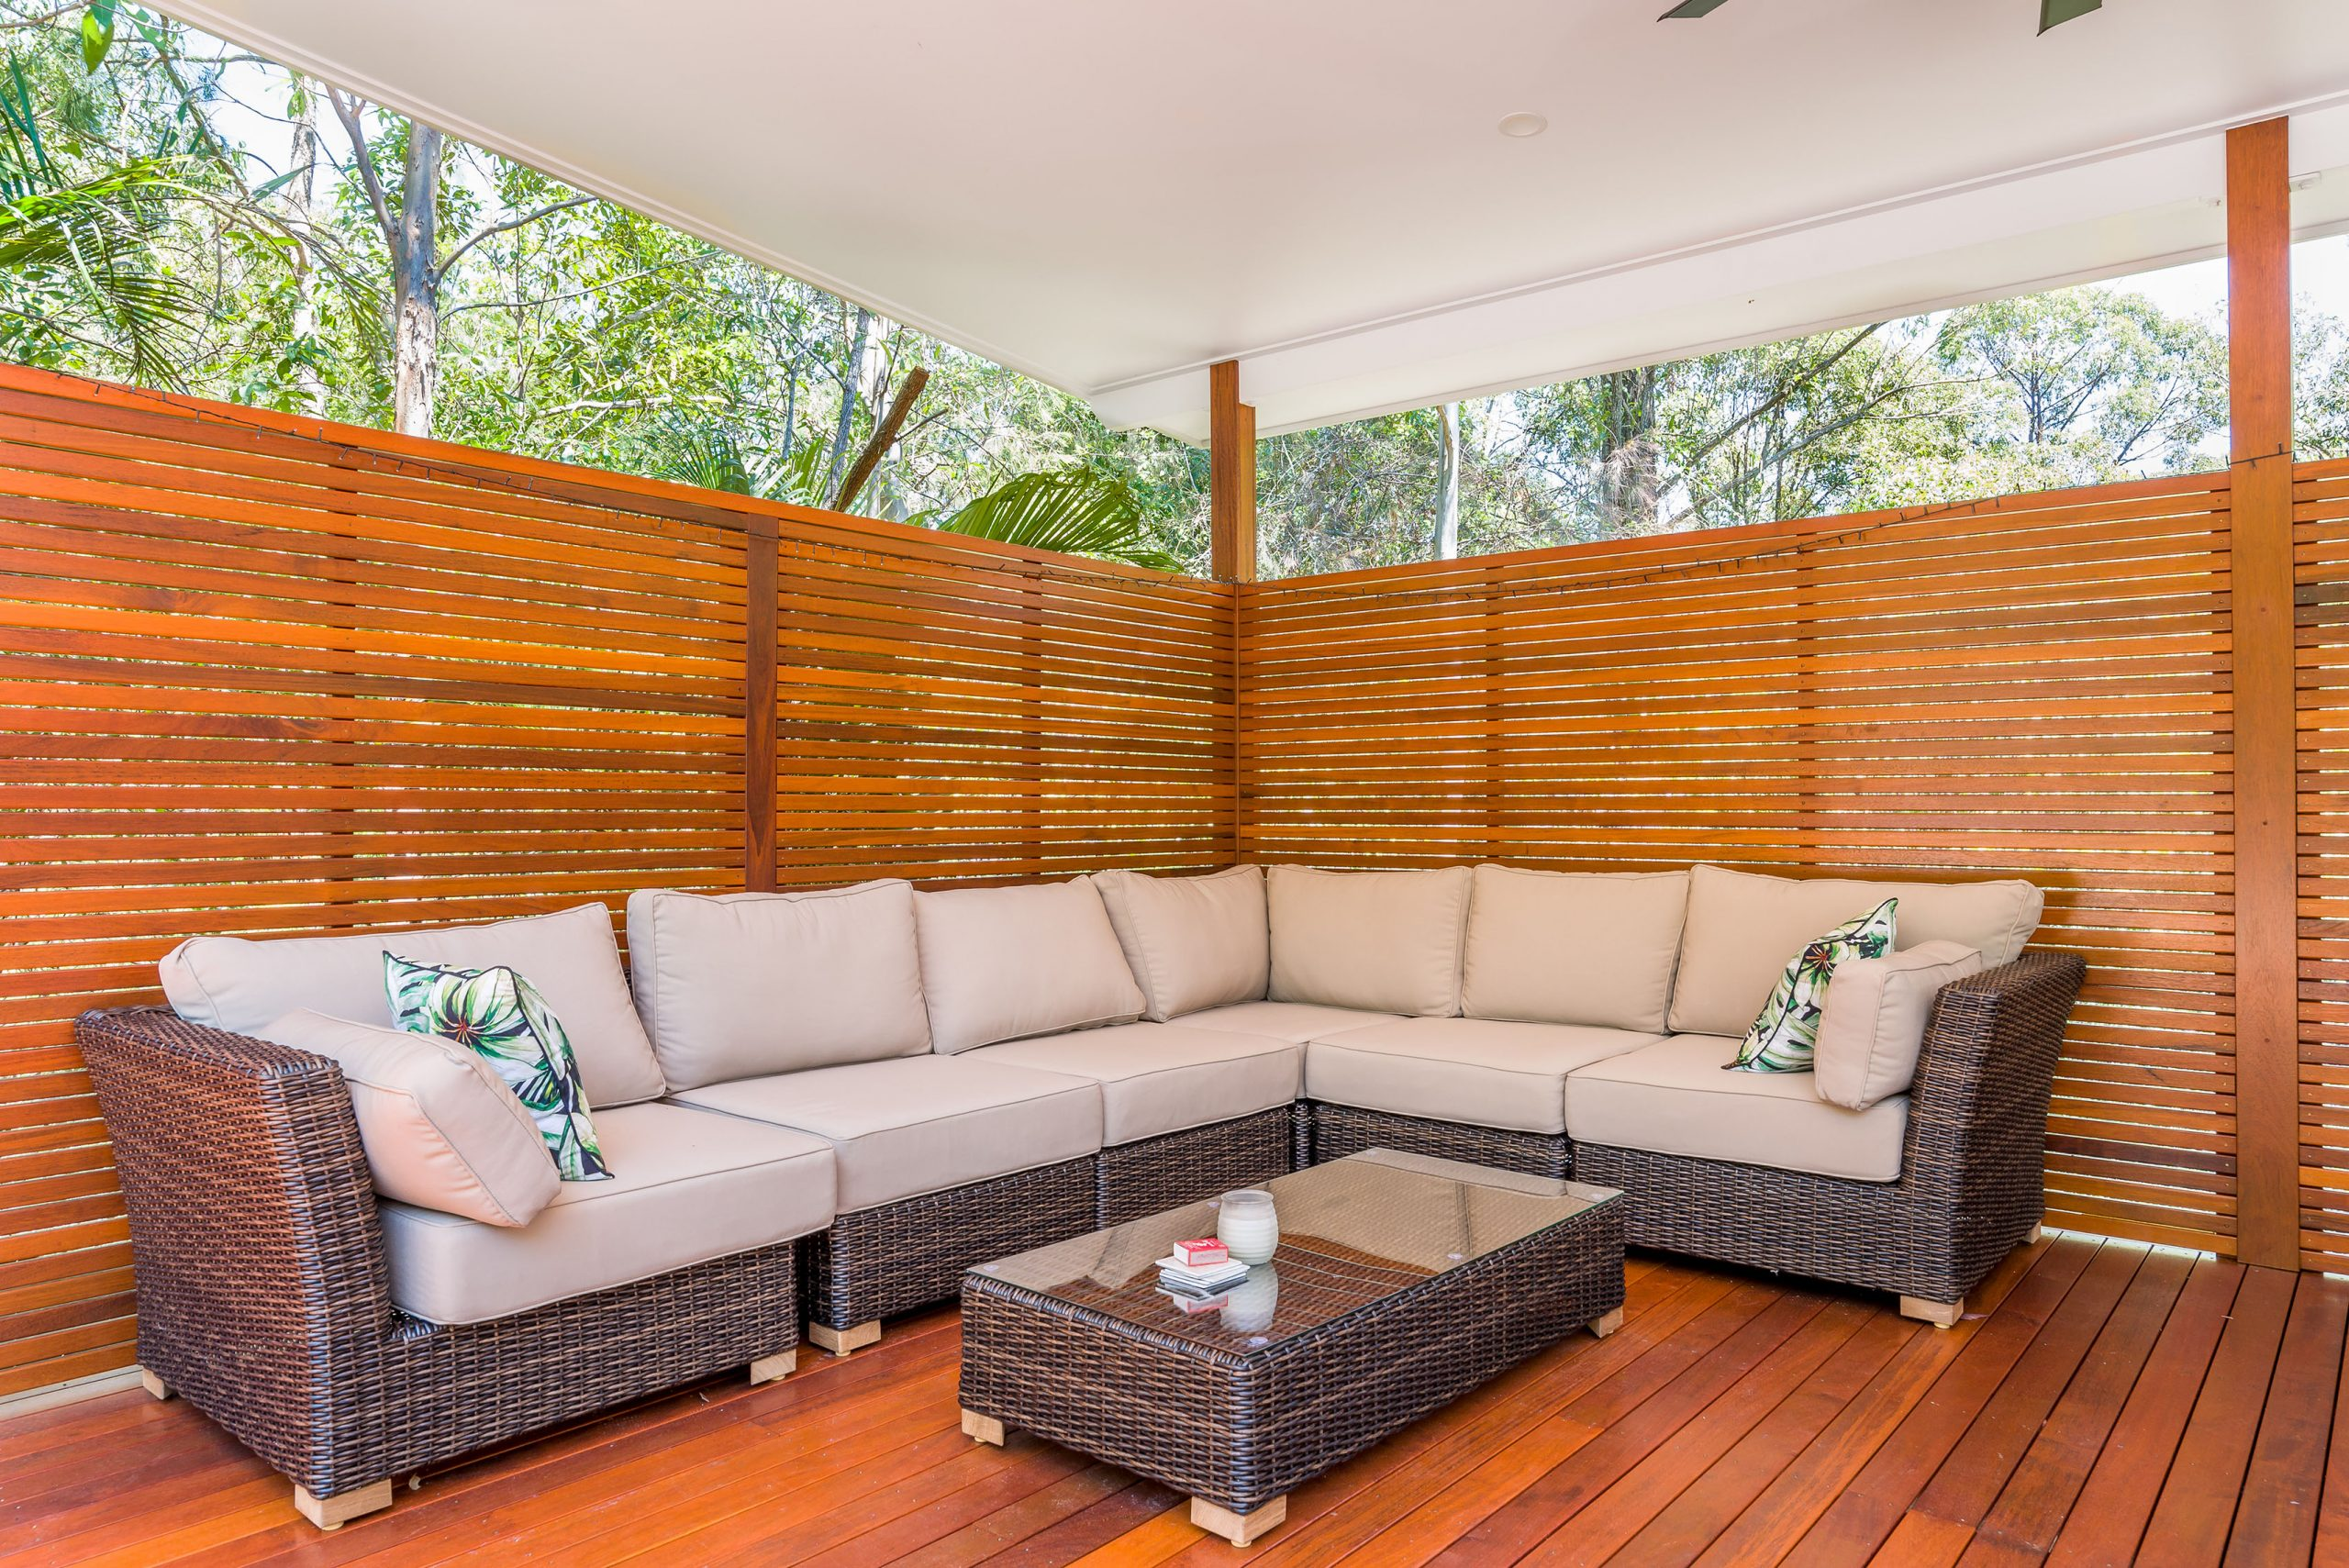 river city constructions brisbane outdoor area timber decking